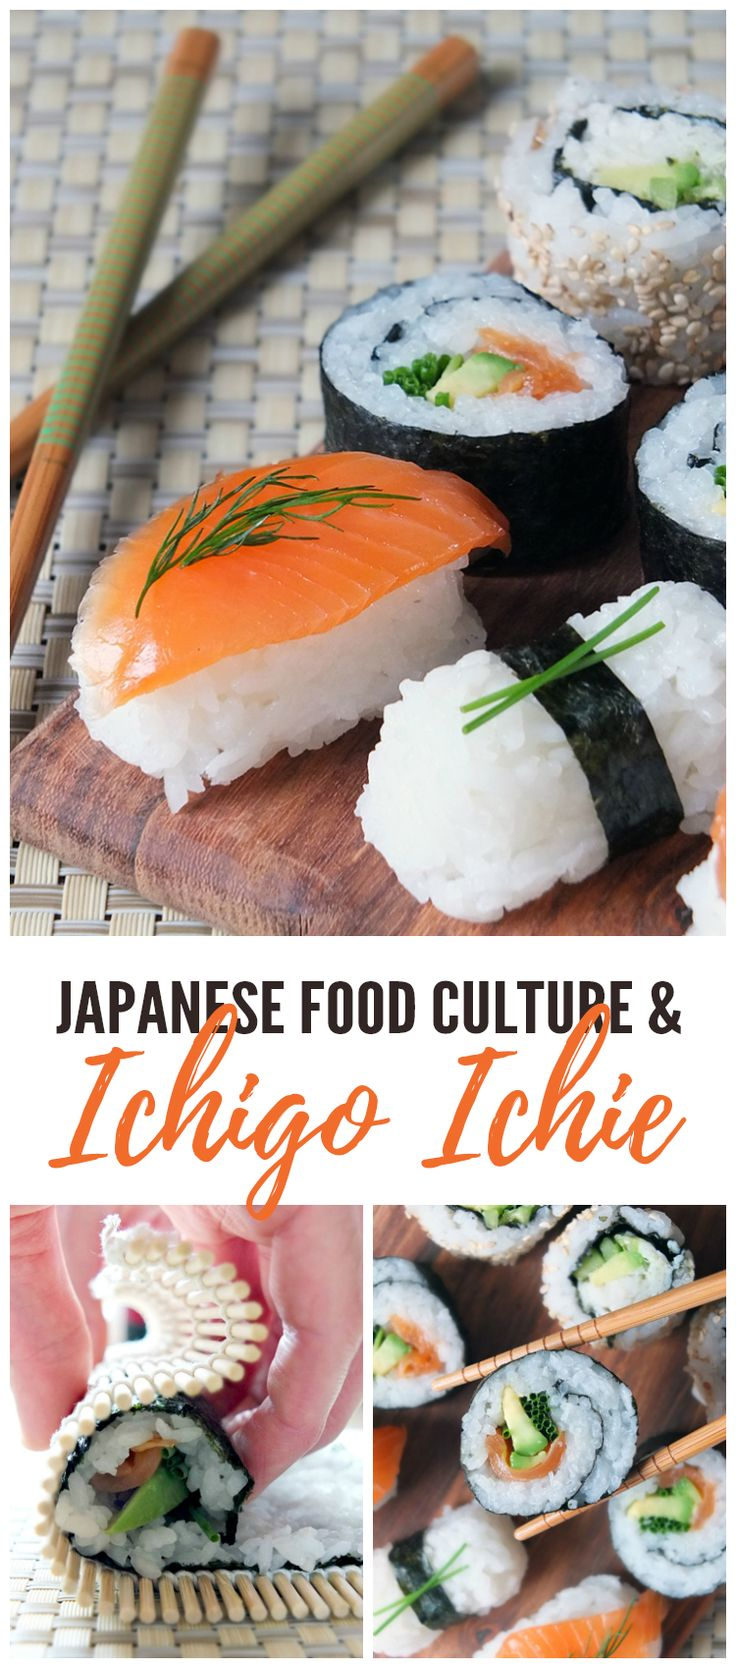 "Ichigo ichie literally translates as ""one opportunity, one encounter"". Did you know that traditionally women are not trained to be sushi chefs? Tokyo's only all-female sushi restaurant is challenging this."